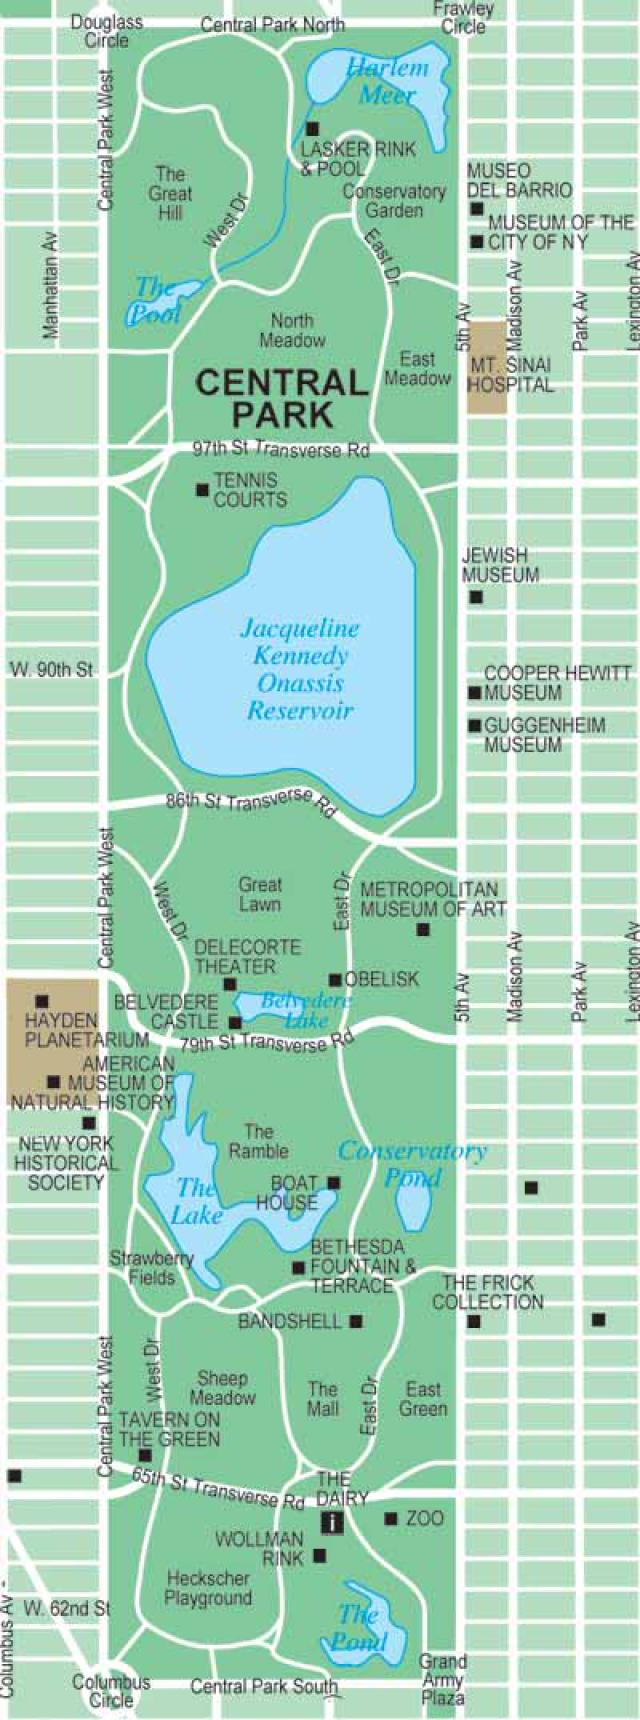 Central Park New York Map Pdf.Central Park Maps Full Www Naturalrugs Store